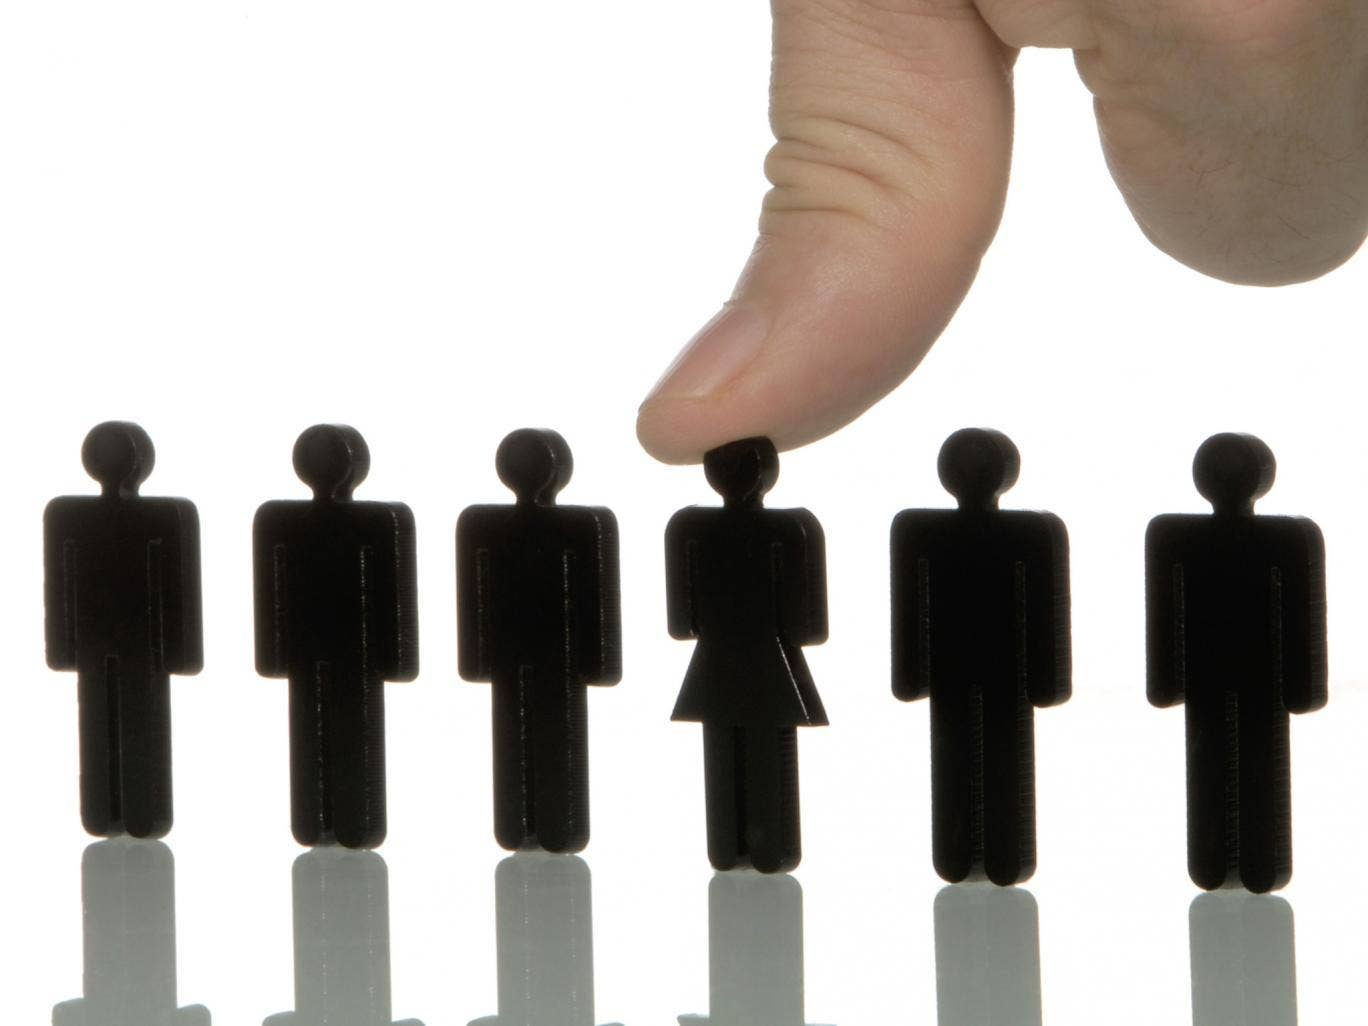 Think, sexual harrassment in male dominated workplace